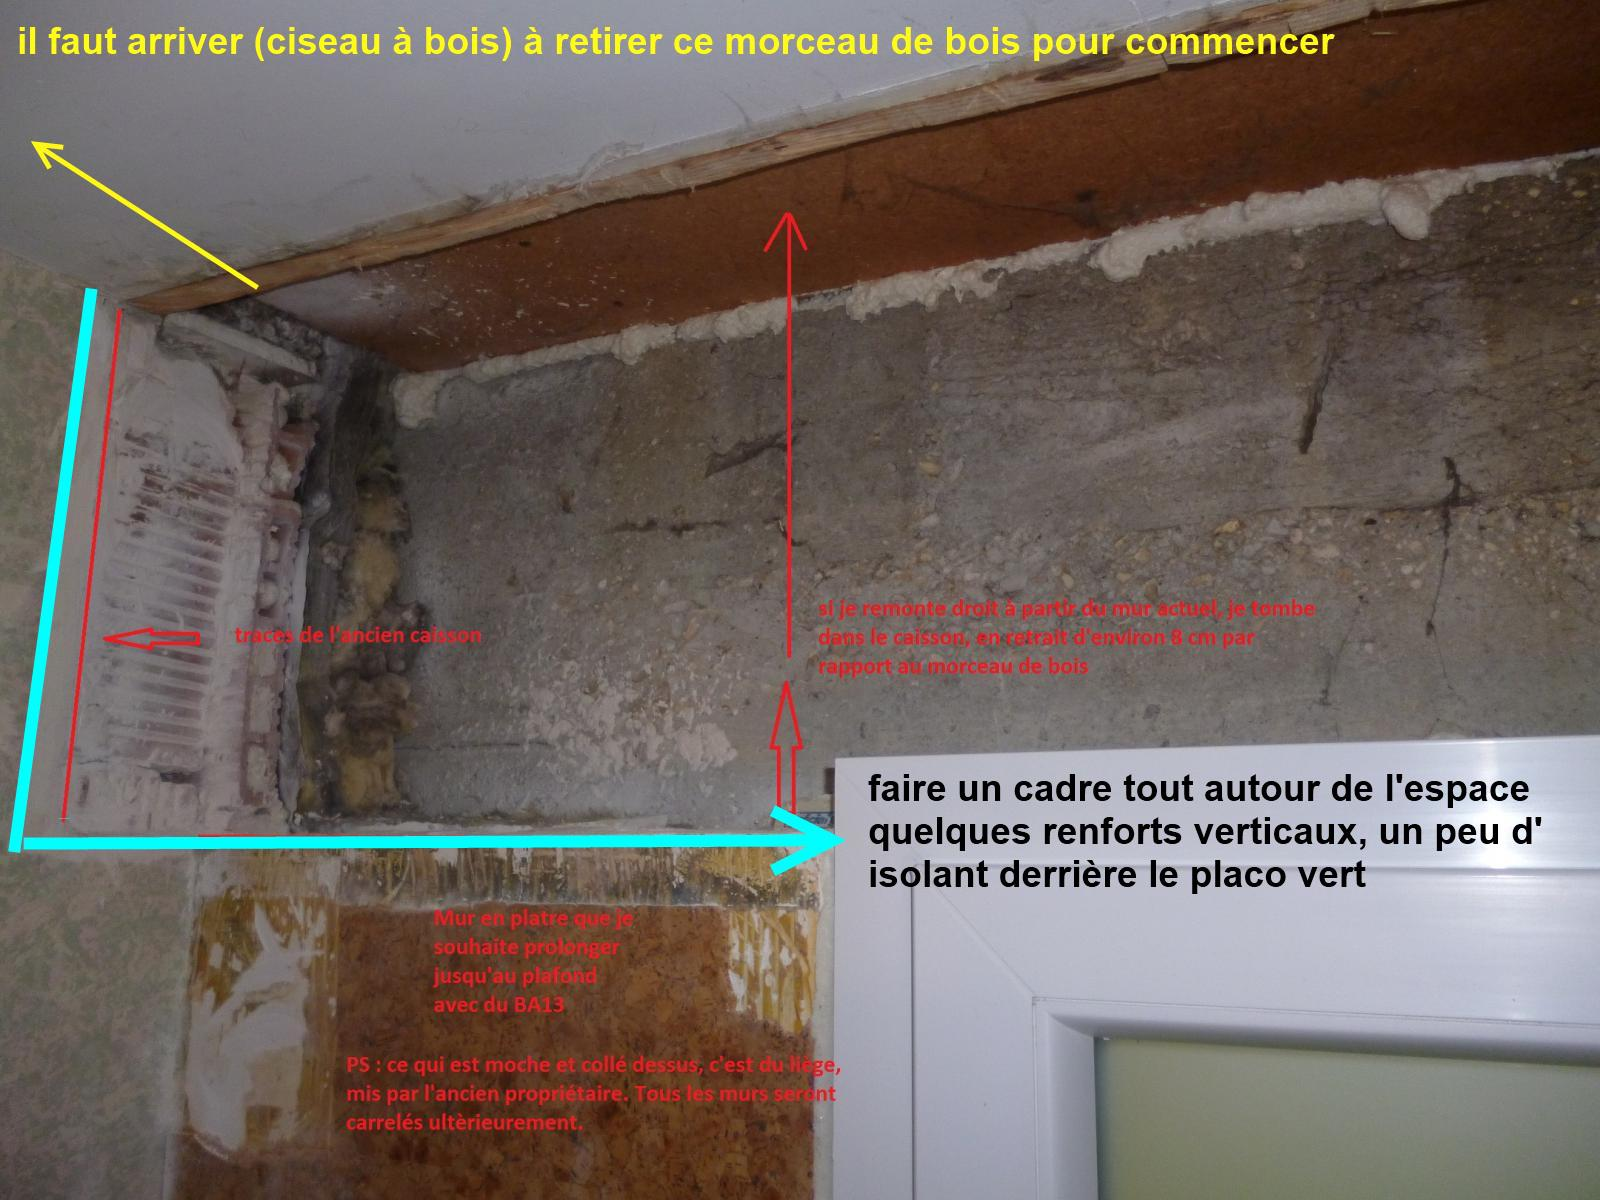 combler l u0026 39 espace laiss u00e9 libre suite  u00e0 la suppression d u0026 39 un coffre de volet